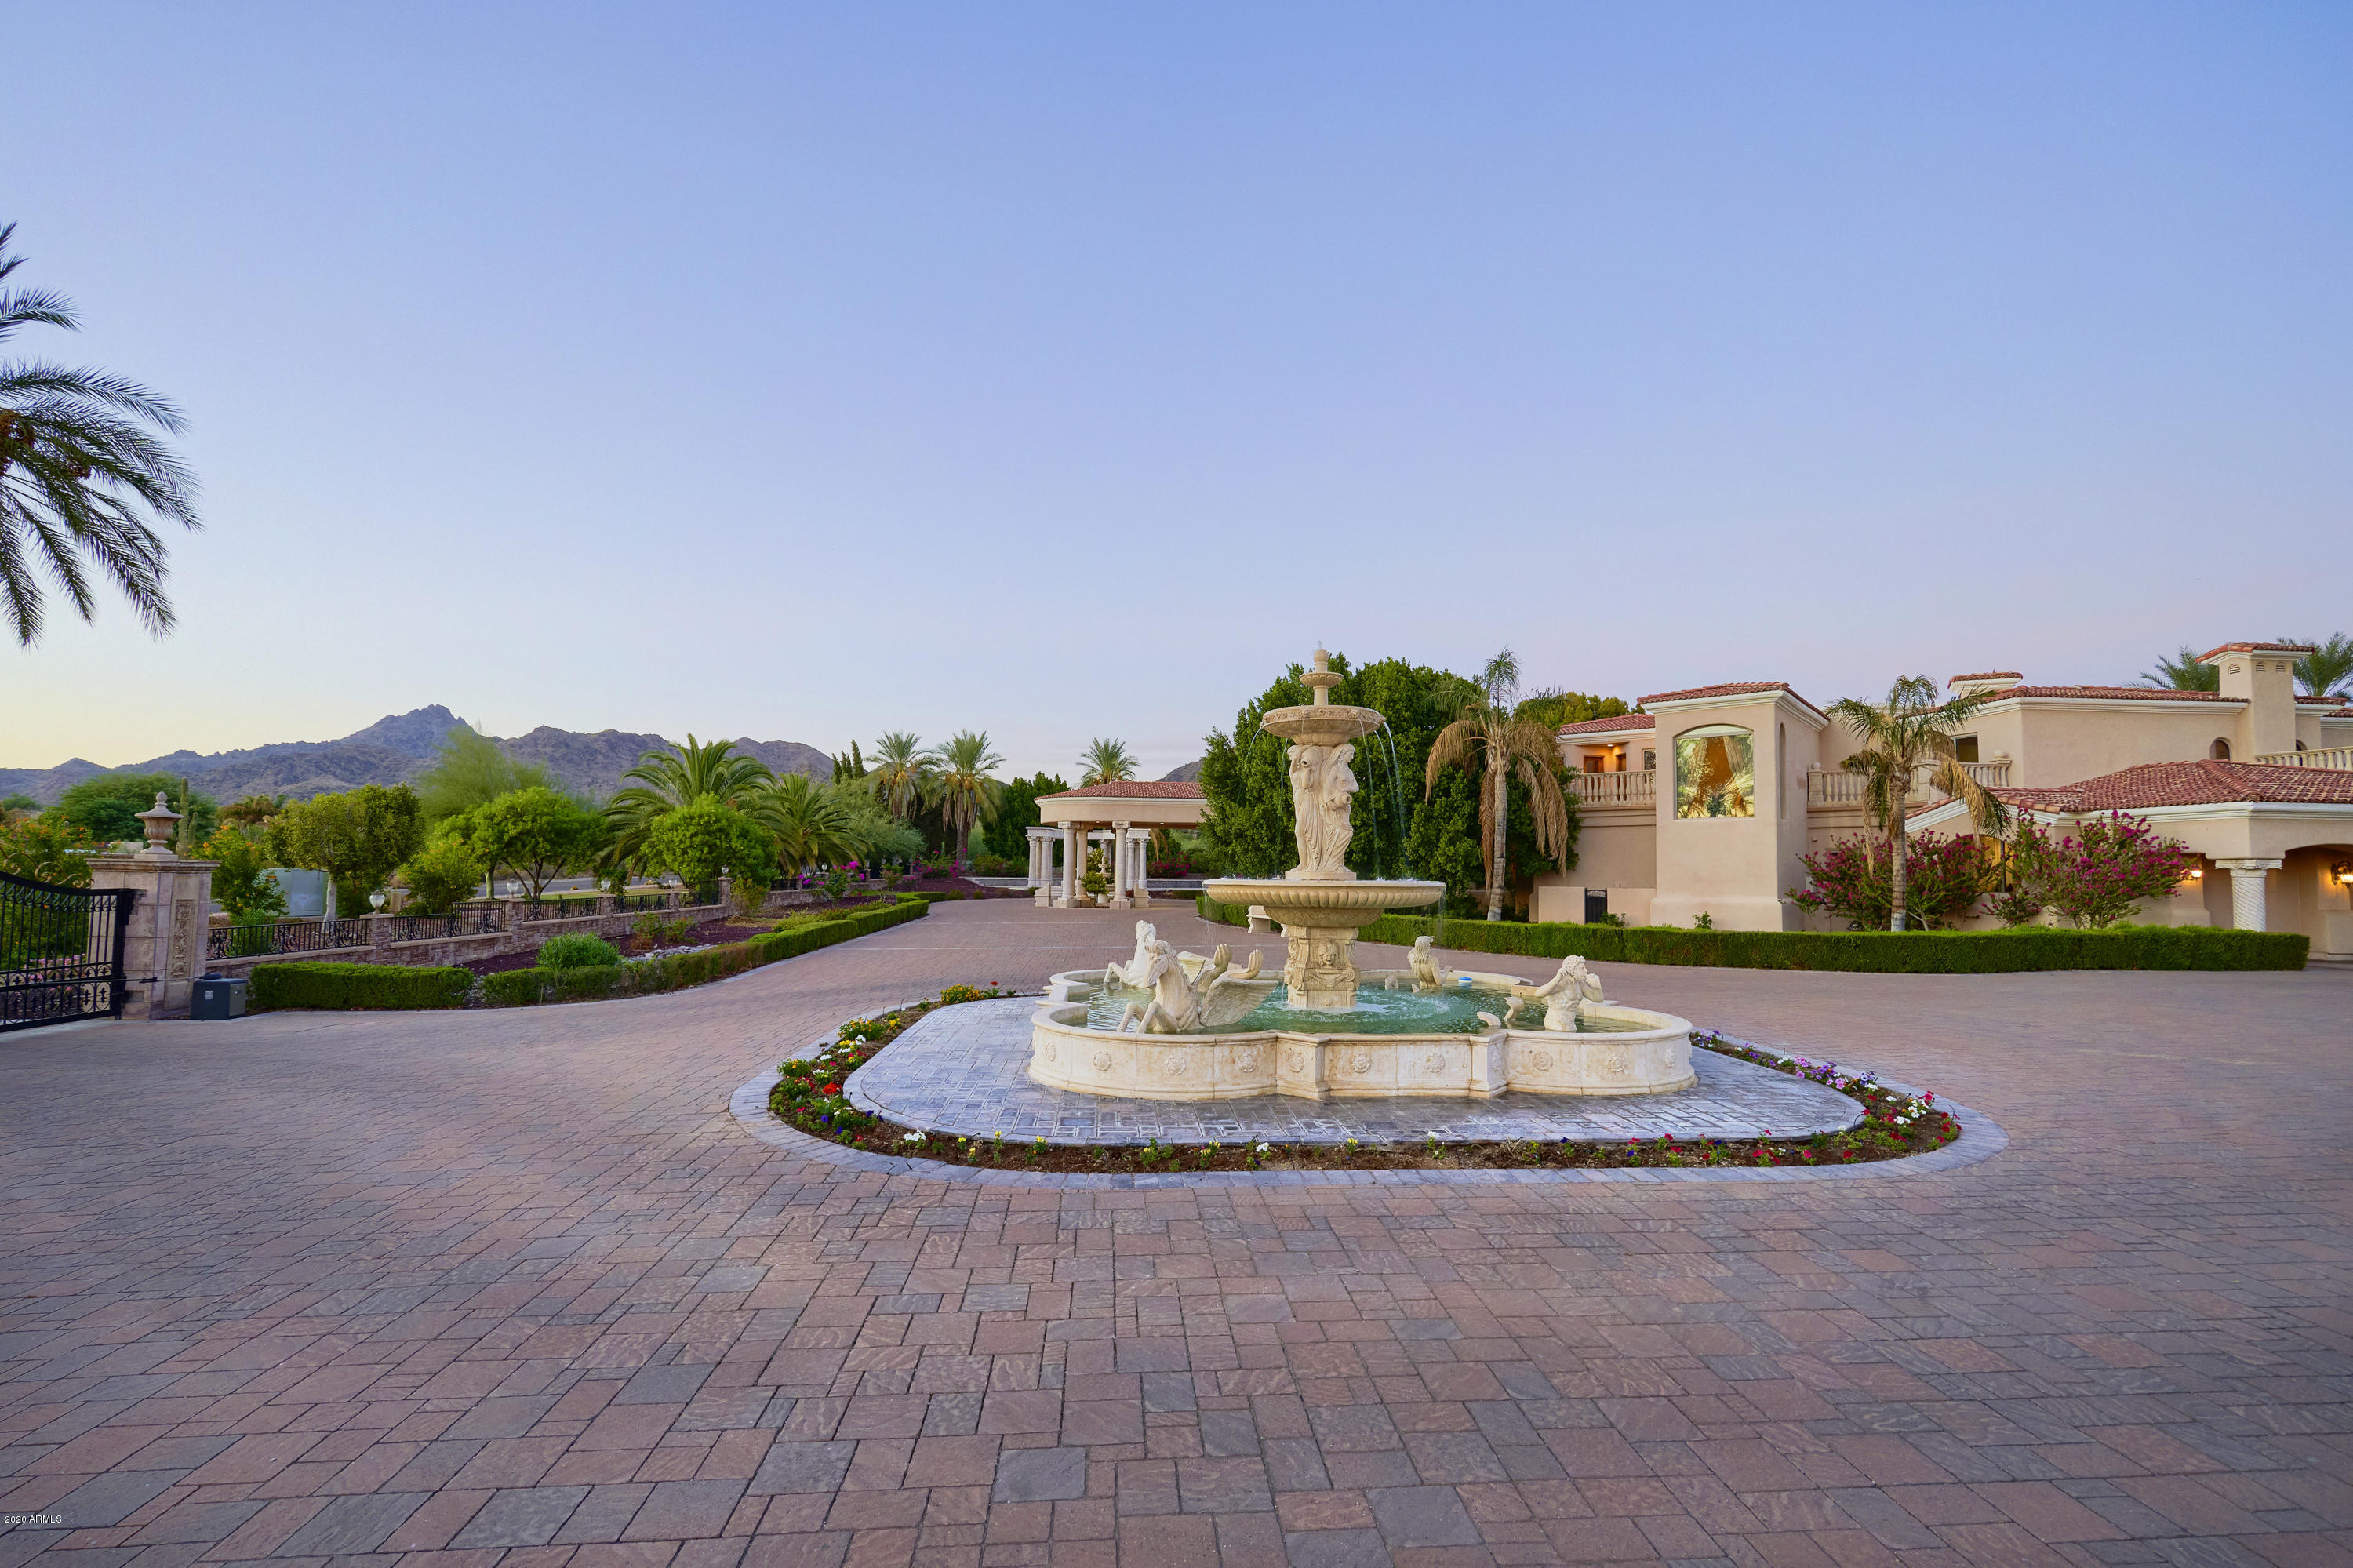 MLS 6148731 5837 N Palo Cristi Road, Paradise Valley, AZ 85253 Paradise Valley AZ Private Spa